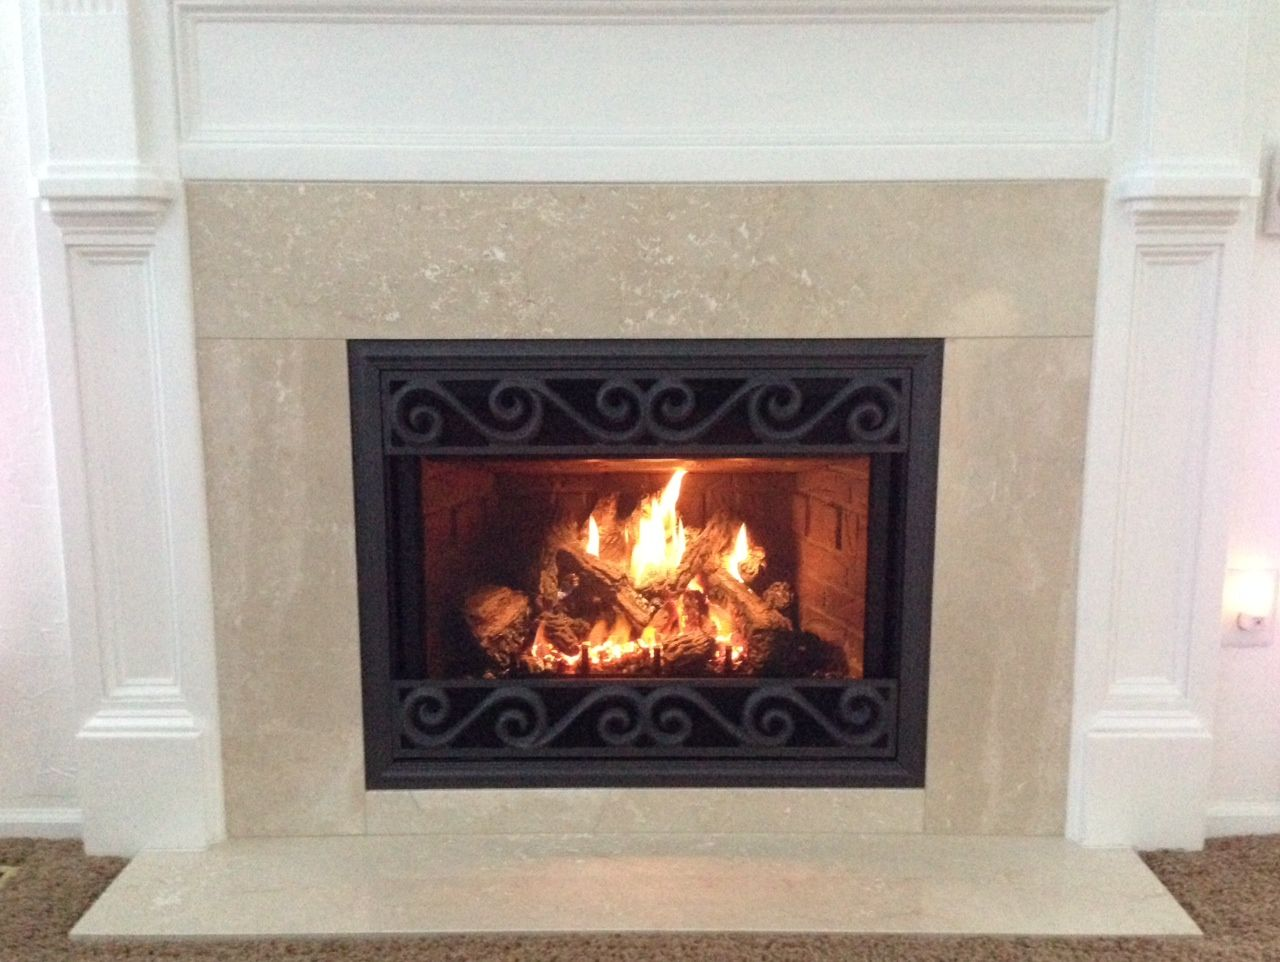 mendota hearth dxv 35 gas fireplace shown with deerfield front